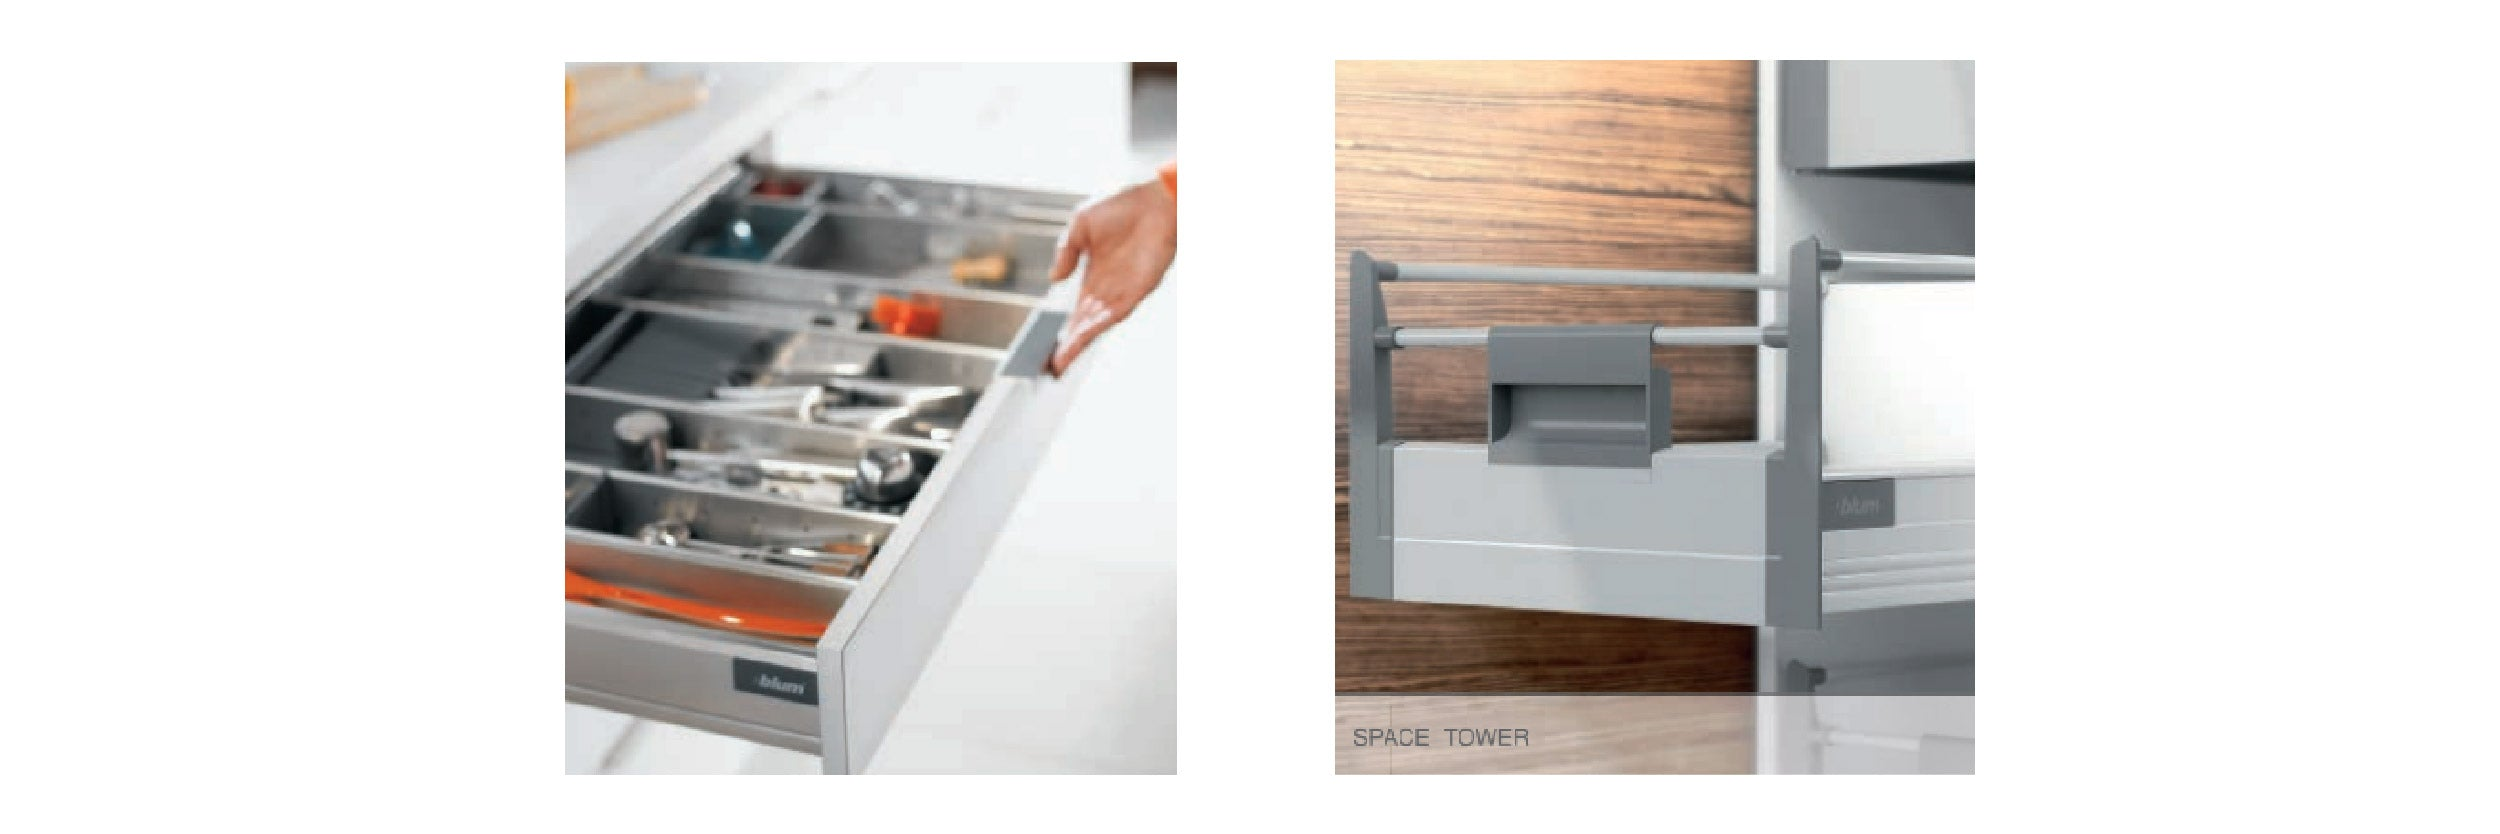 Blum images for kitchens